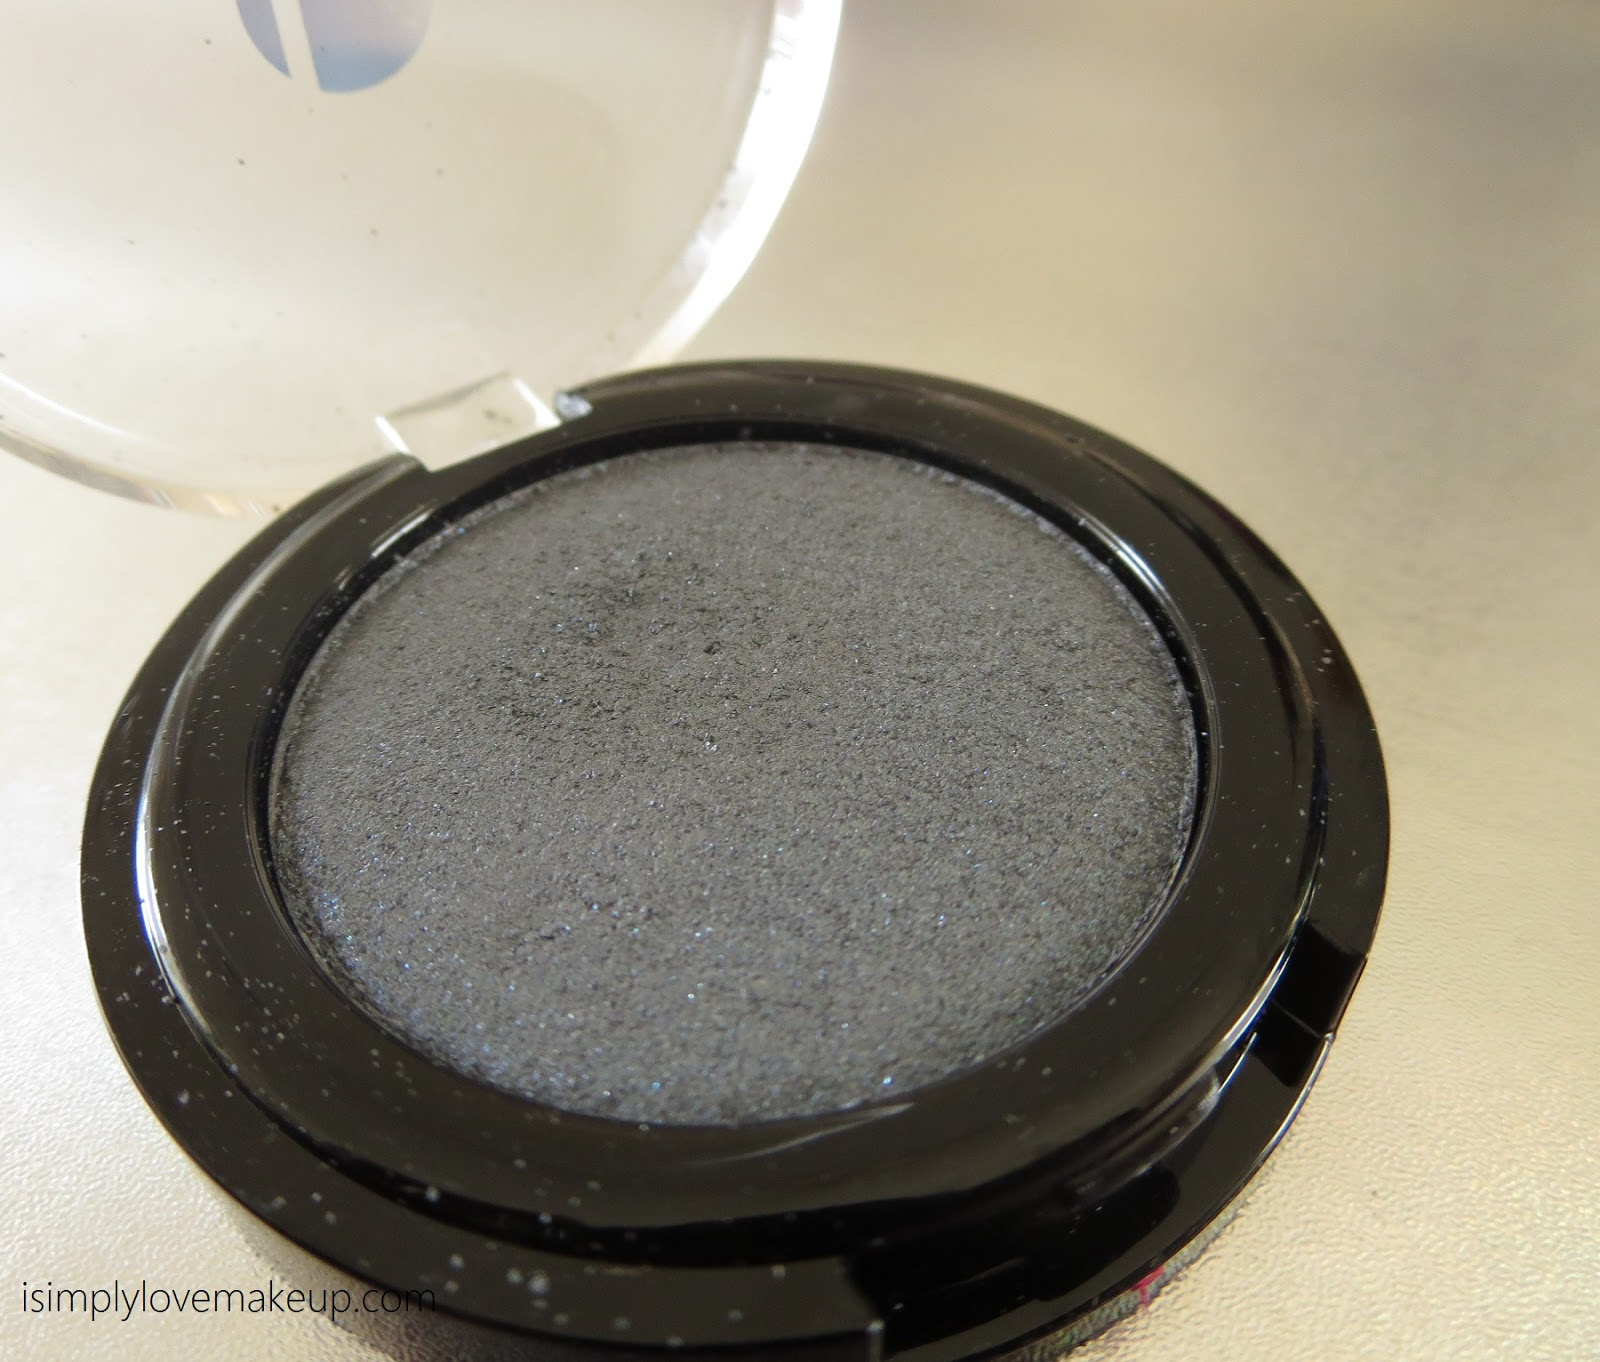 Lakme Absolute Colour Illusion Eyeshadow - Smokey Pearl